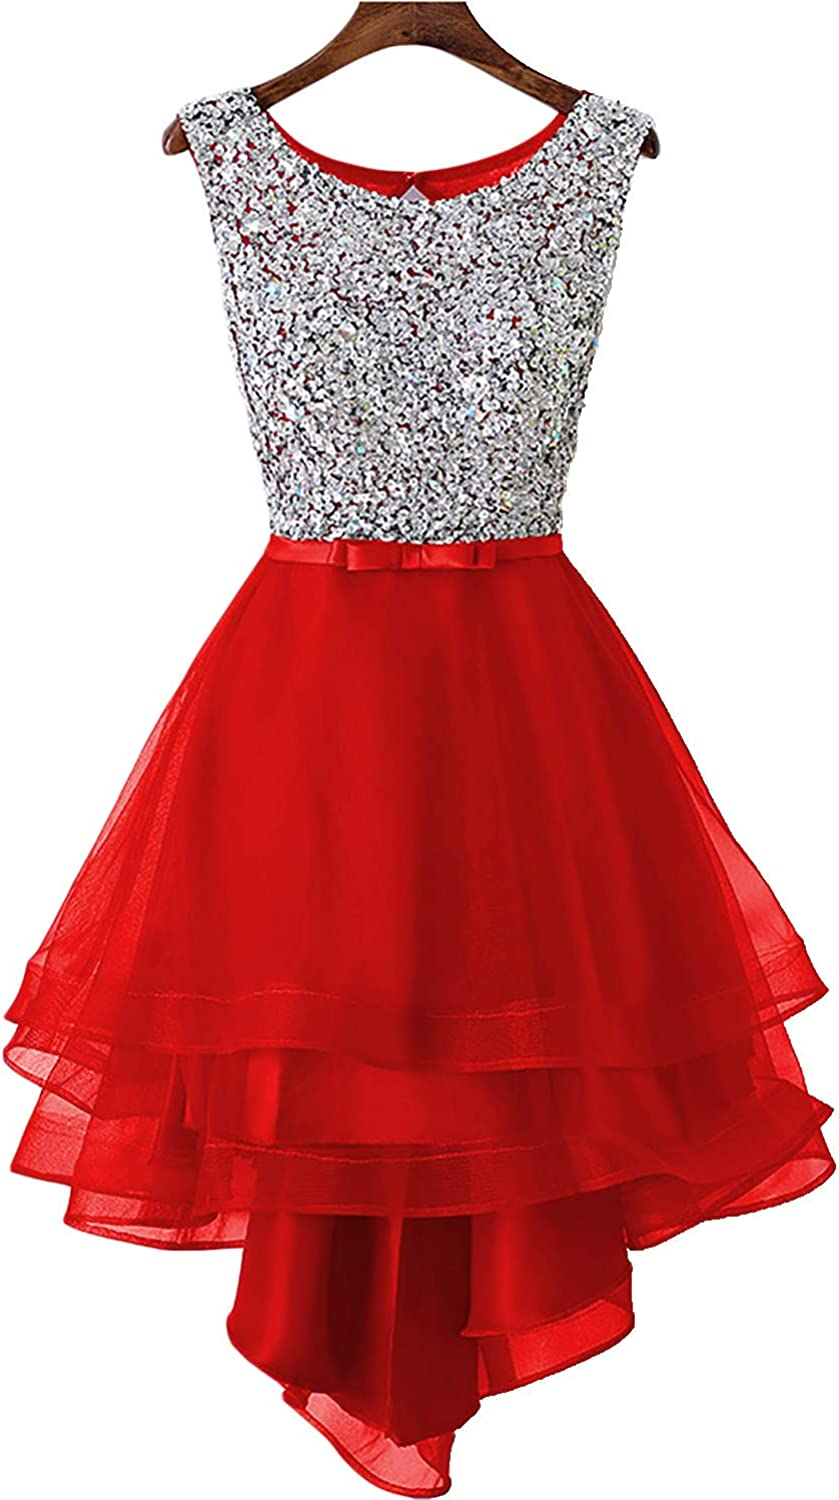 EverBeauty Womens Beaded High Low Homecoming Dress Short Sleeveless Tulle Prom Party Gown Scoop Neck